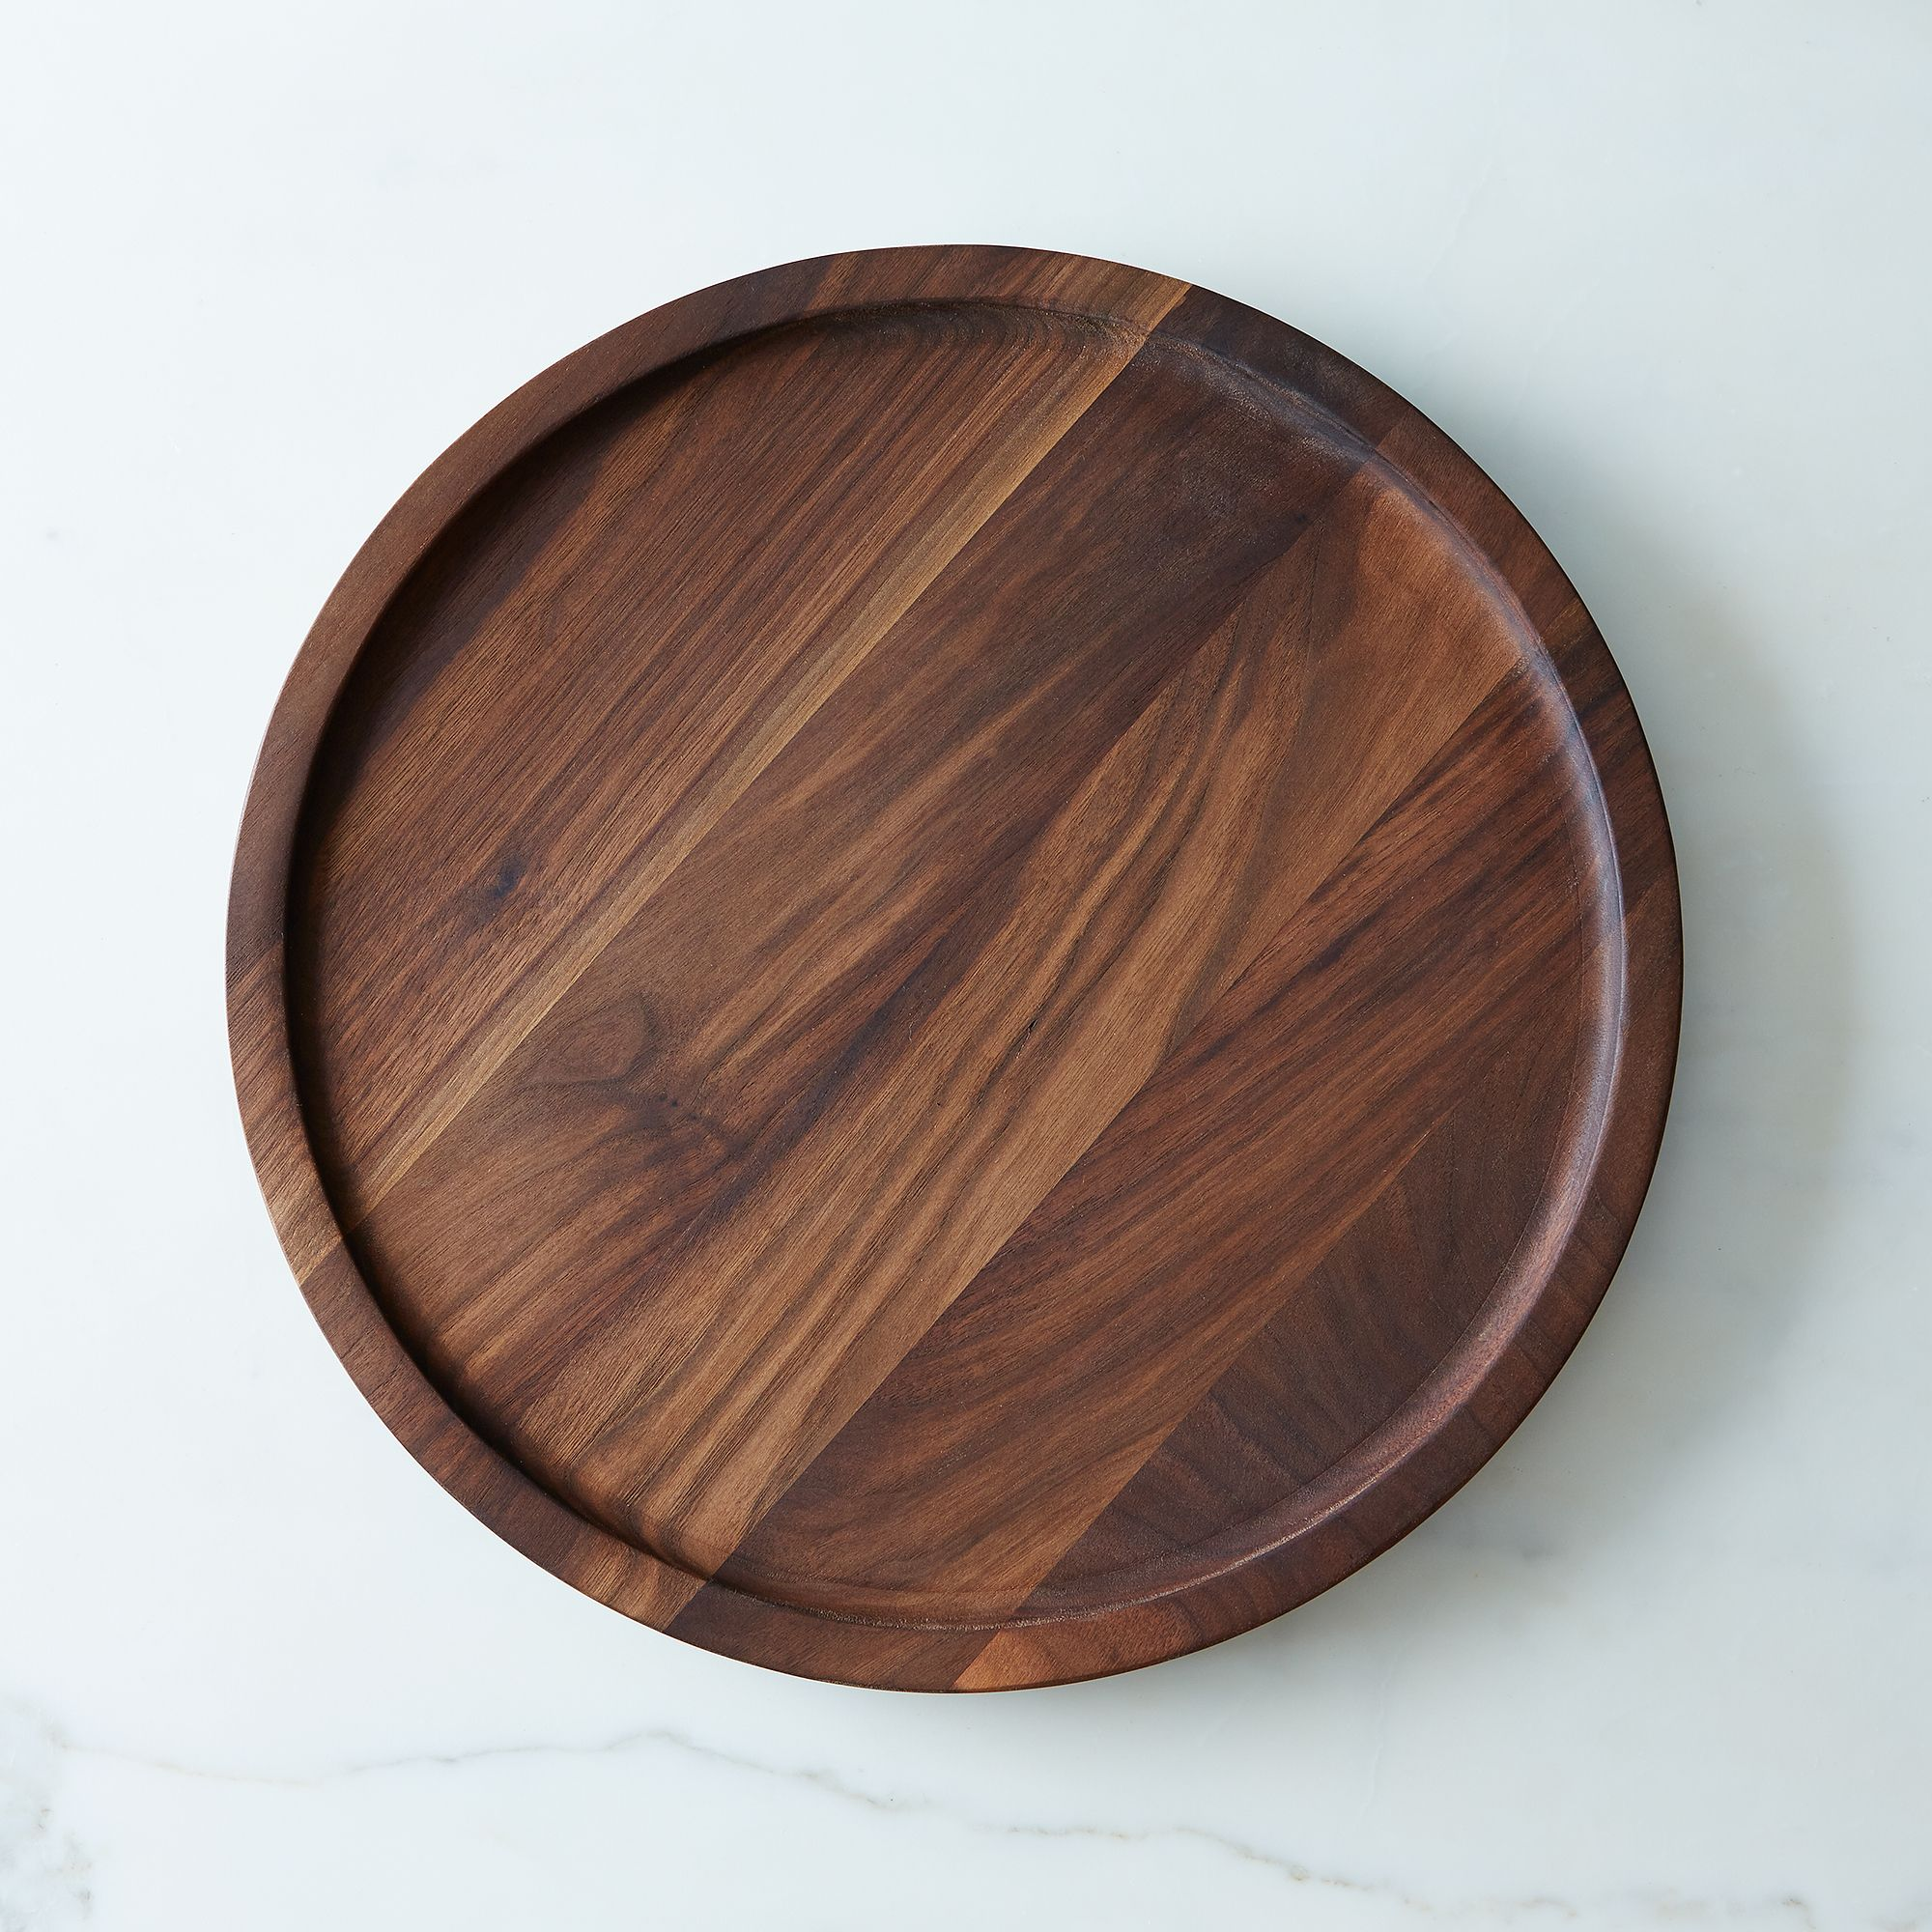 Ce2eb771 251d 44ef b8a8 ad0caddf2393  brooklyn handicraft lazy susan walnut provisions mark weinberg 30 06 14 0116 silo